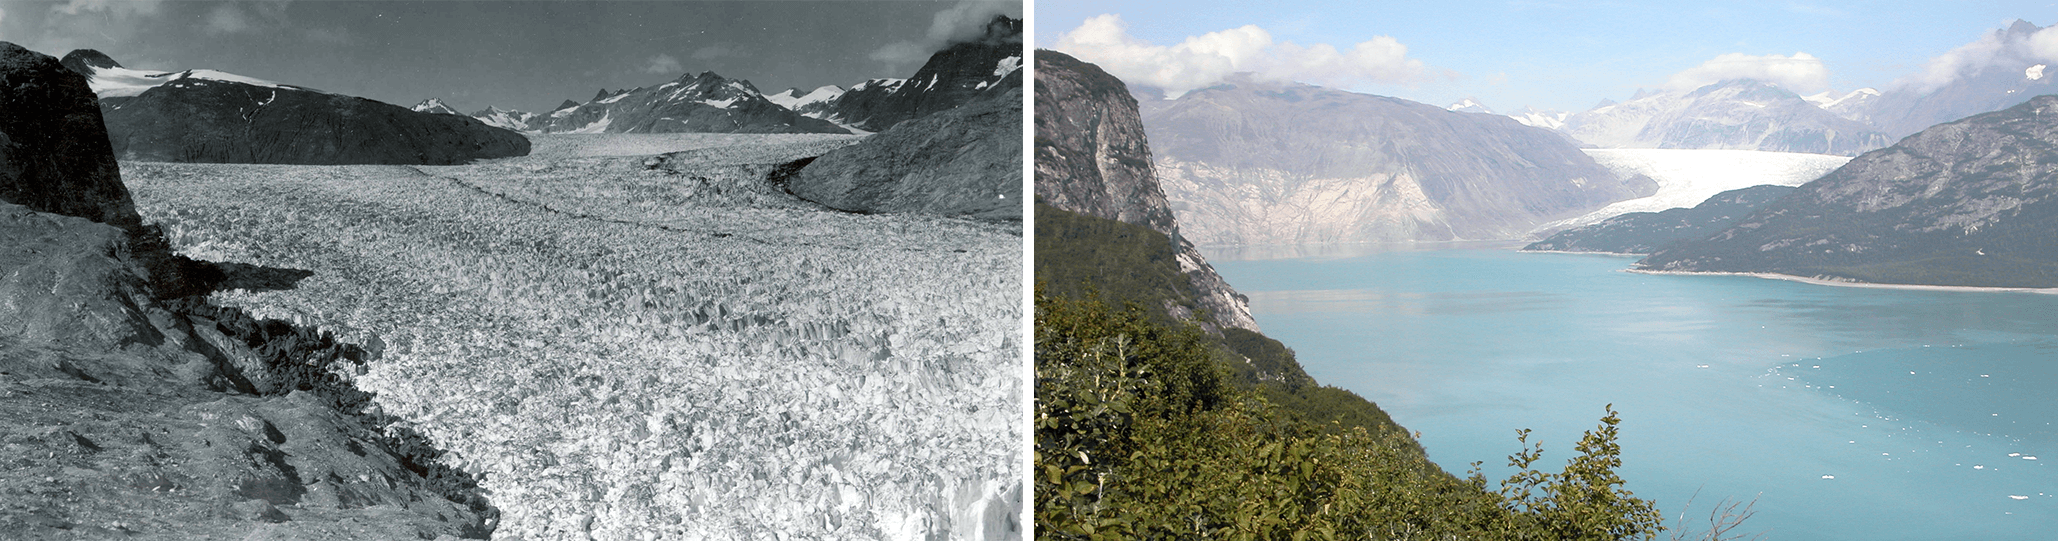 Alaska's Muir glacier in August 1941 and August 2004.